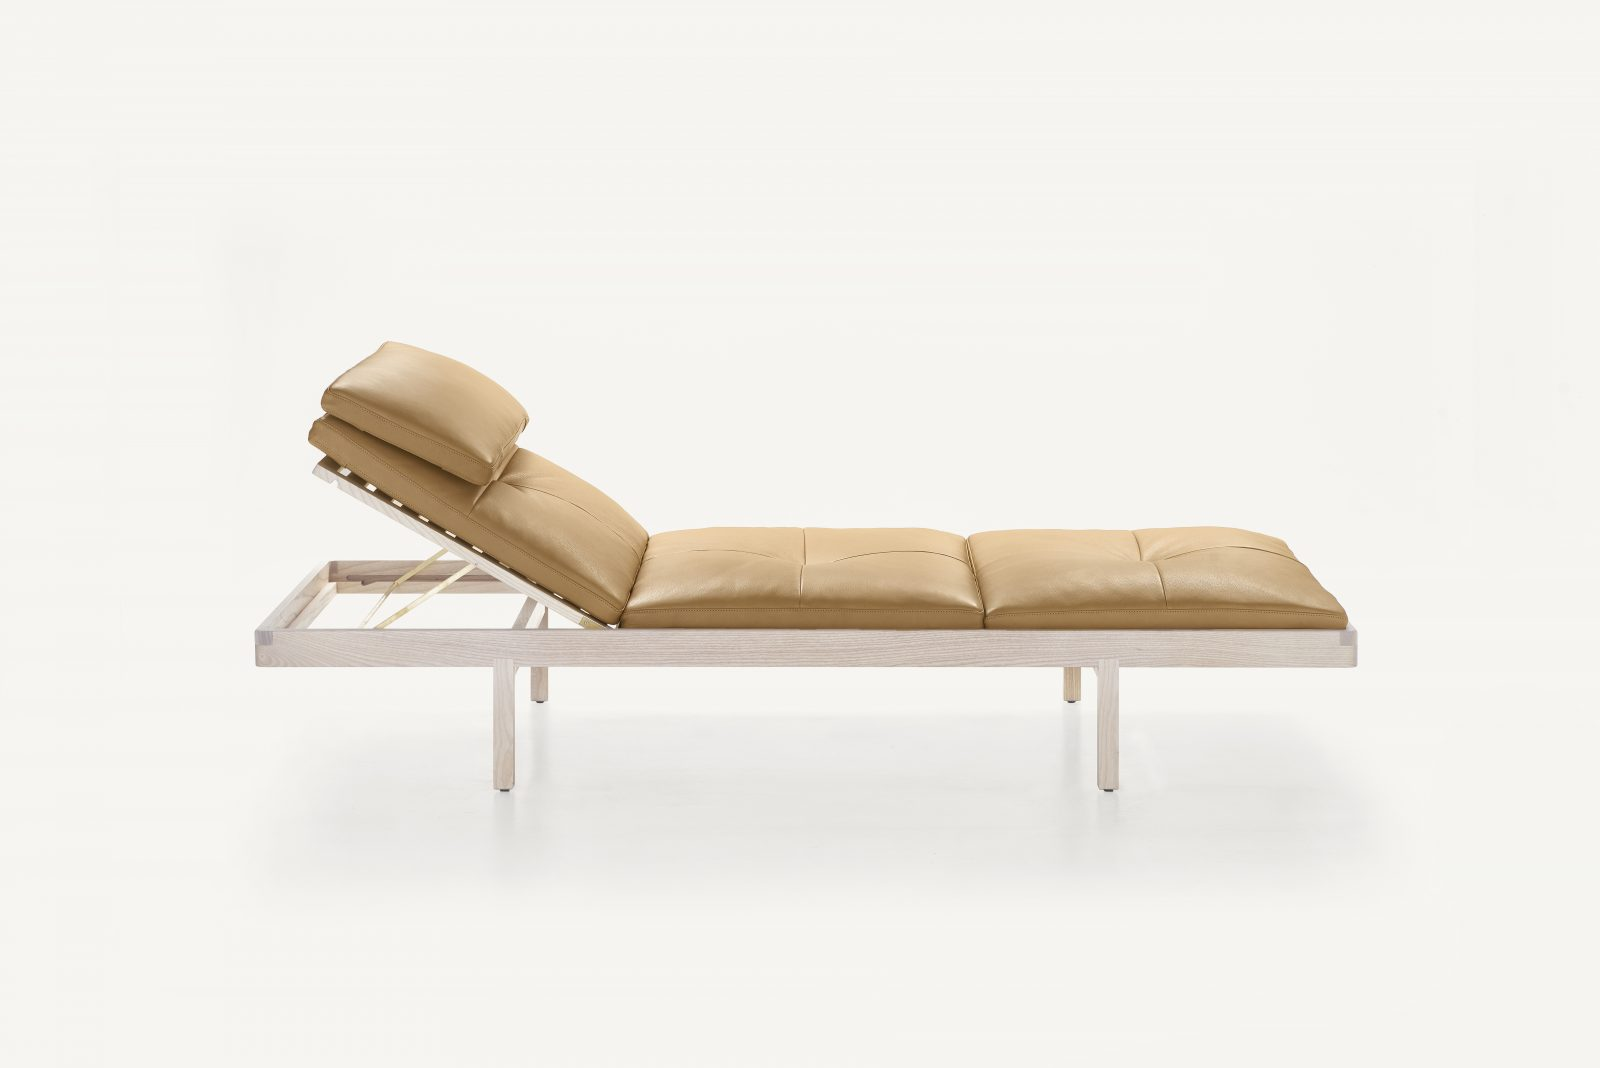 BassamFellows CB-41 Daybed in solid White Ash, credit MARCO FAVALI